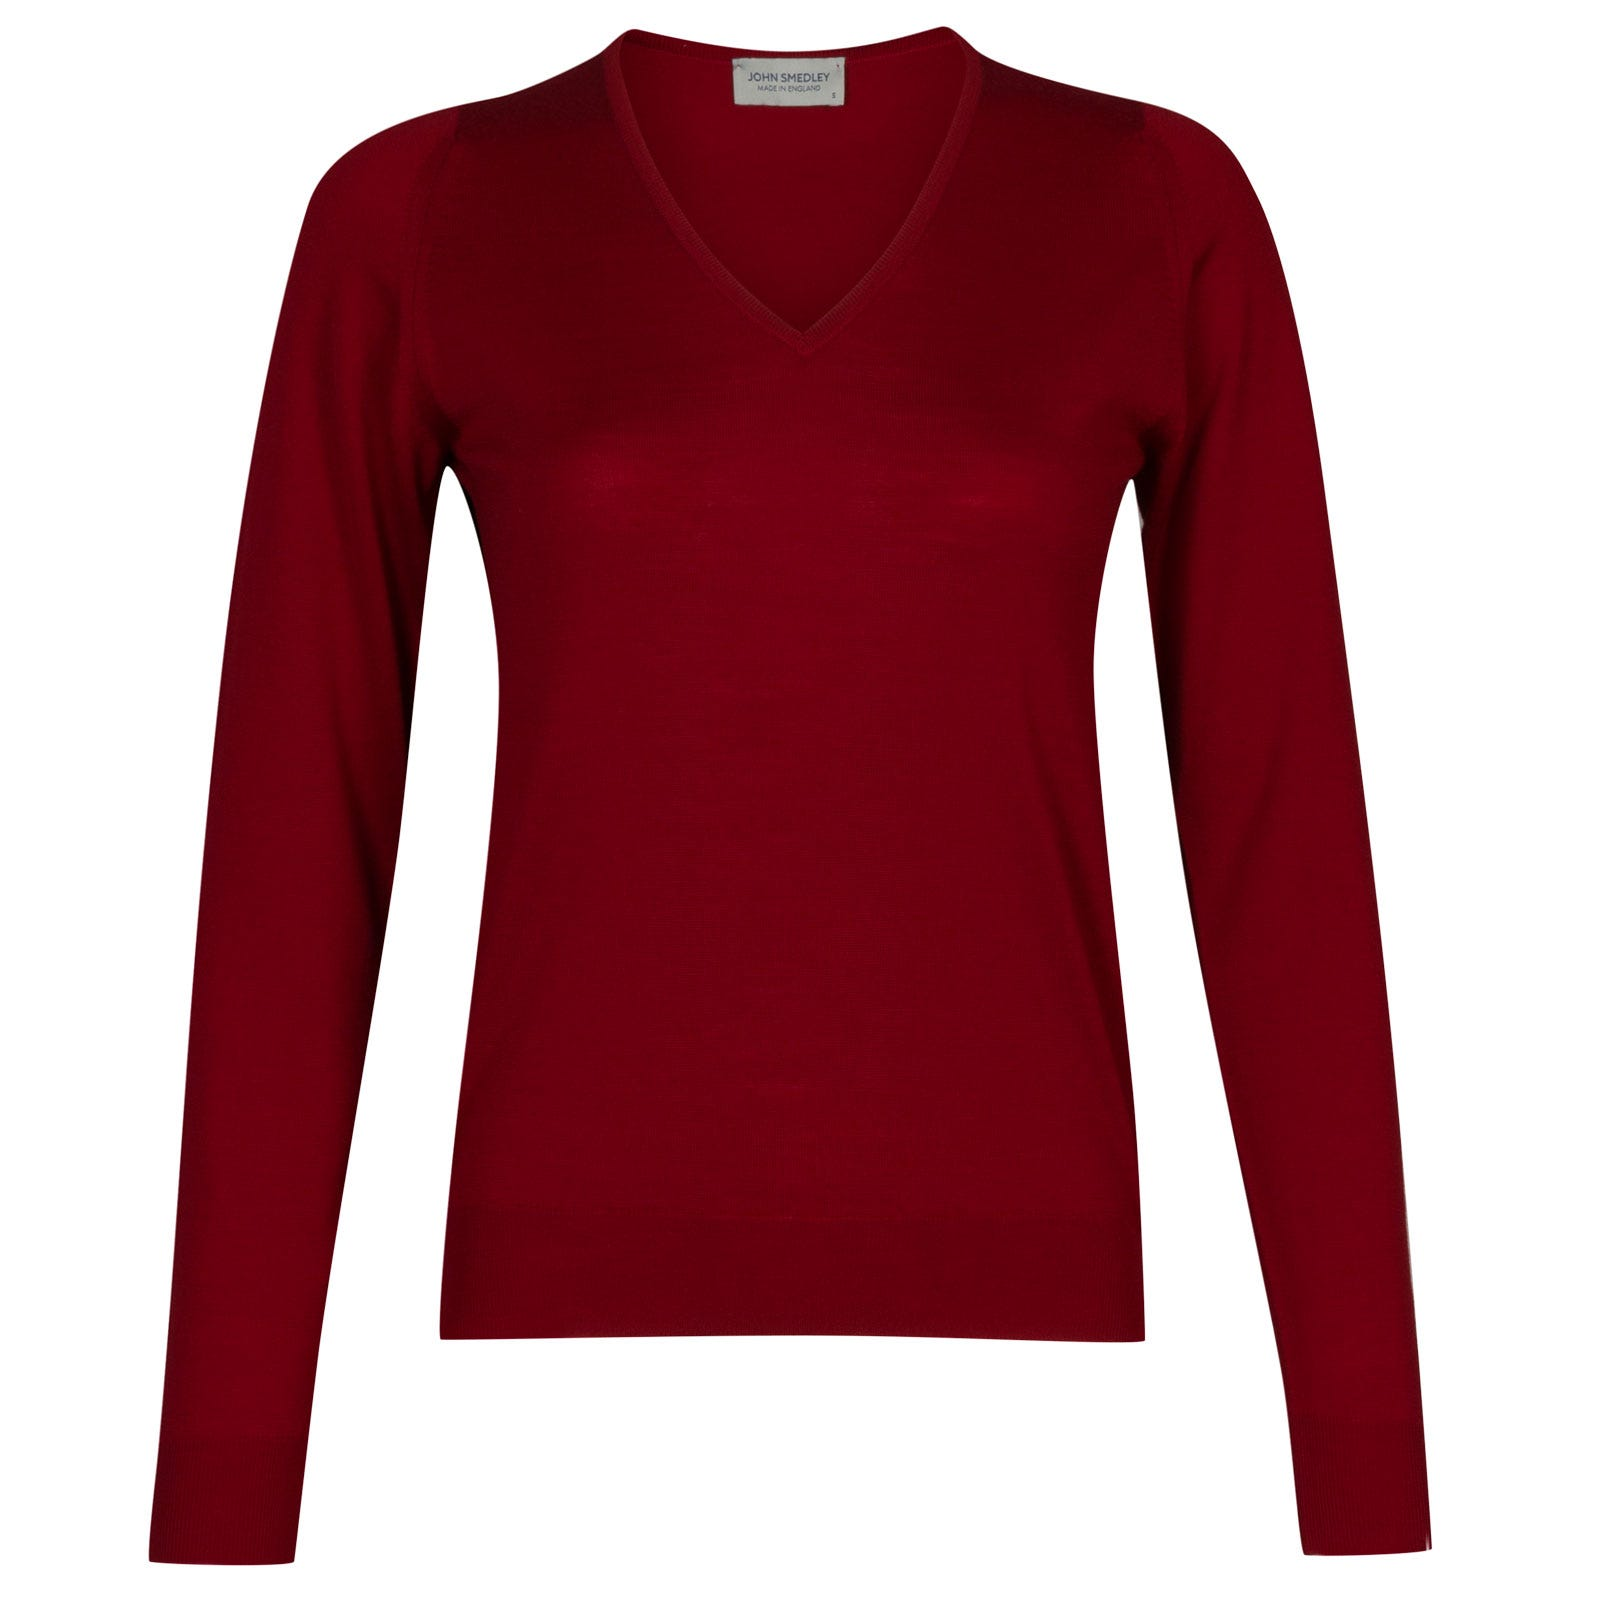 John Smedley manarola Merino Wool Sweater in Crimson Forest-M